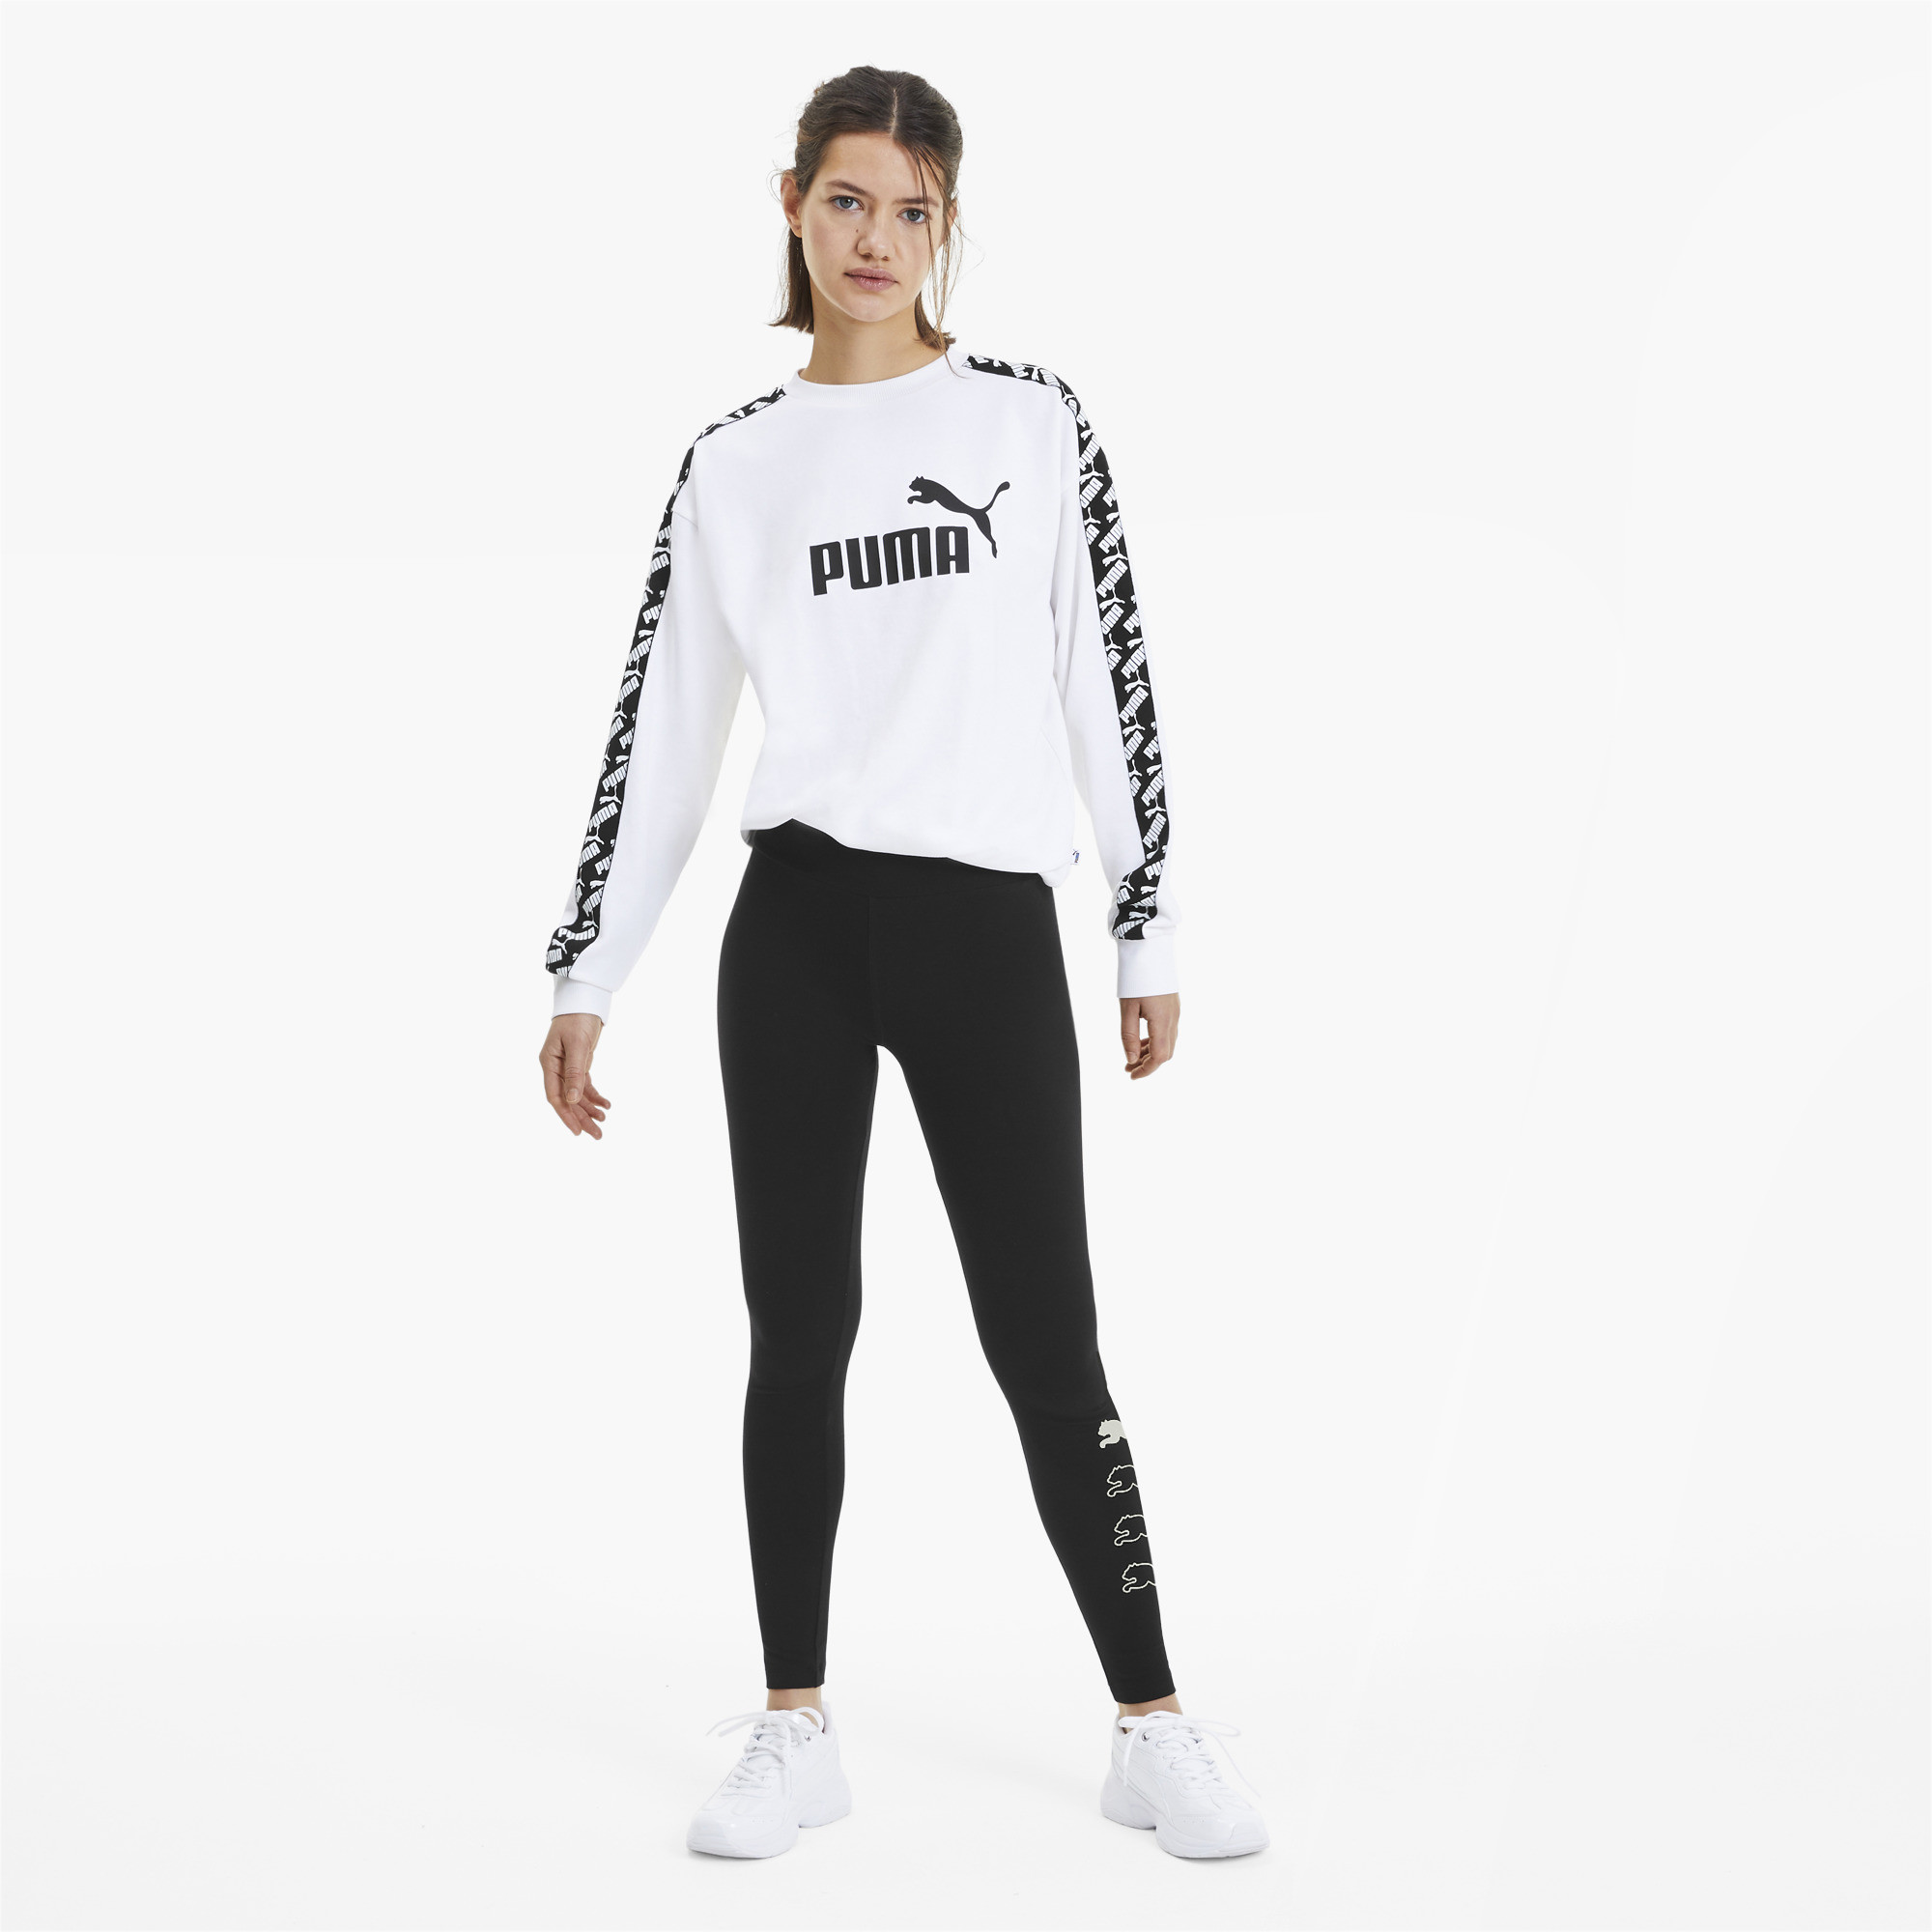 PUMA-Rebel-Women-039-s-Leggings-Women-Basics thumbnail 11